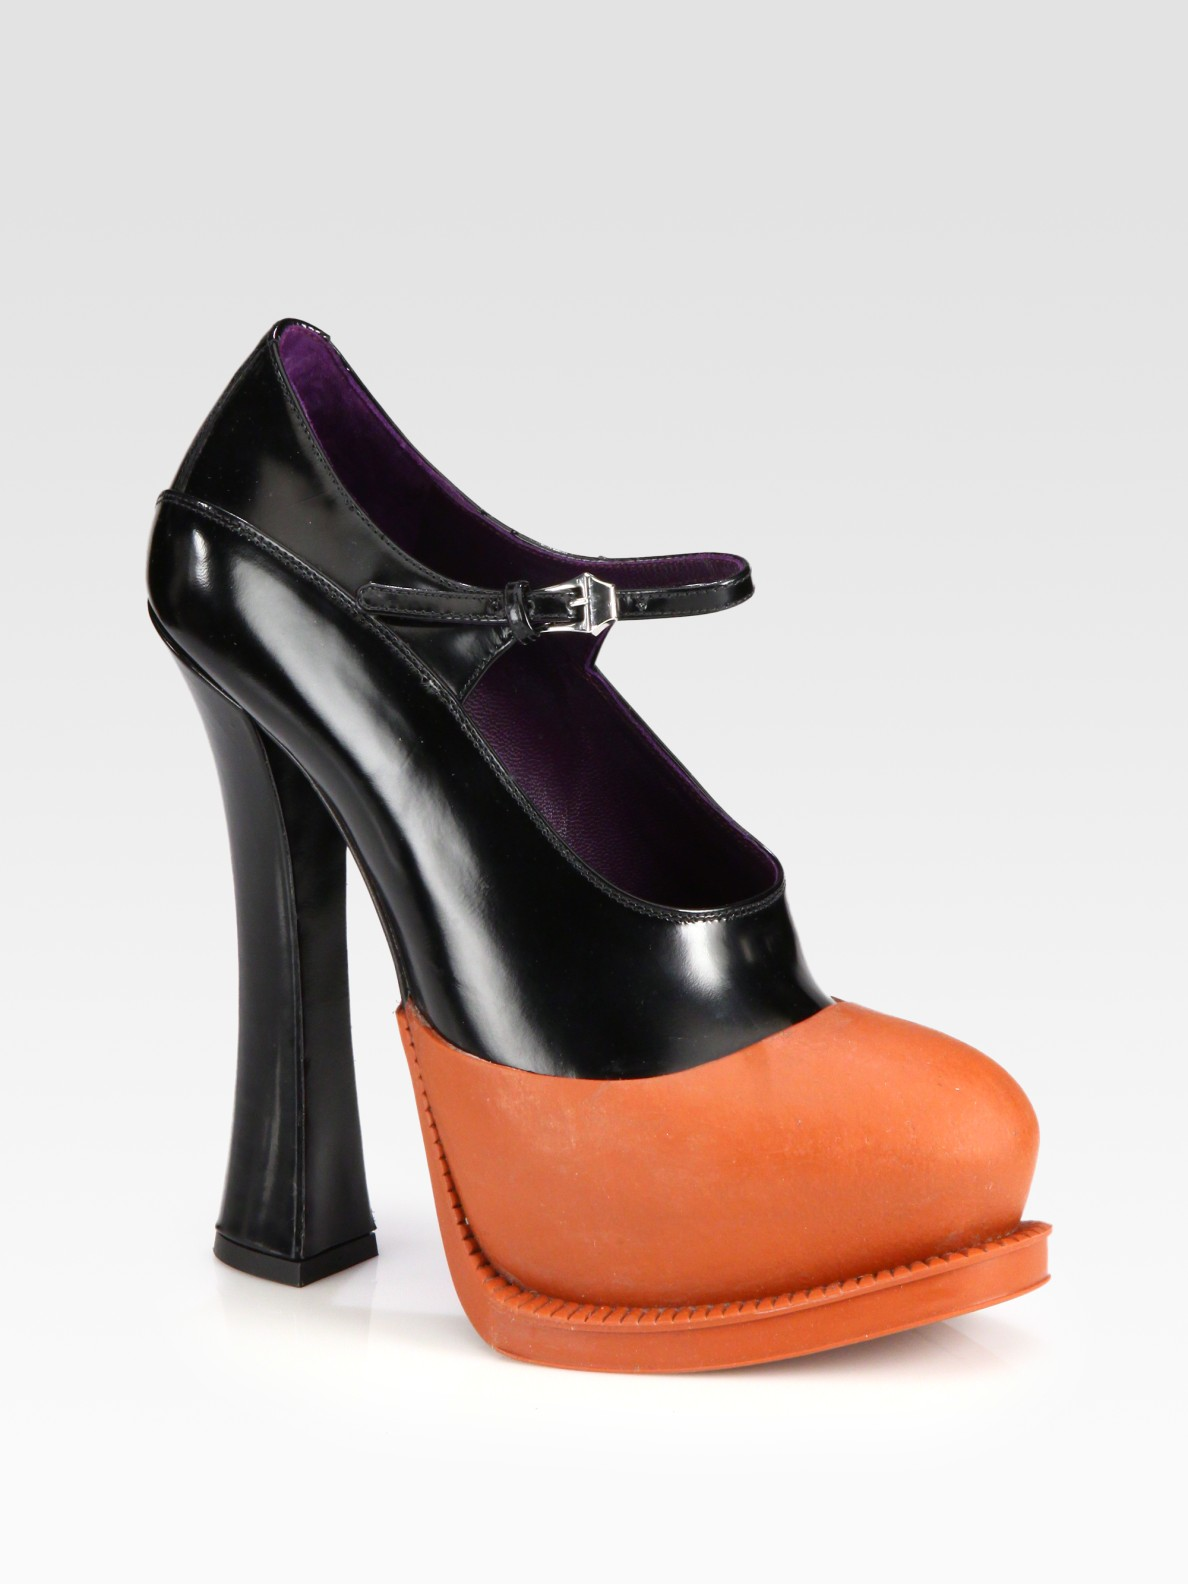 4331c1d9e5b0 Lyst - Prada Bicolor Leather Mary Jane Platform Pumps in Black